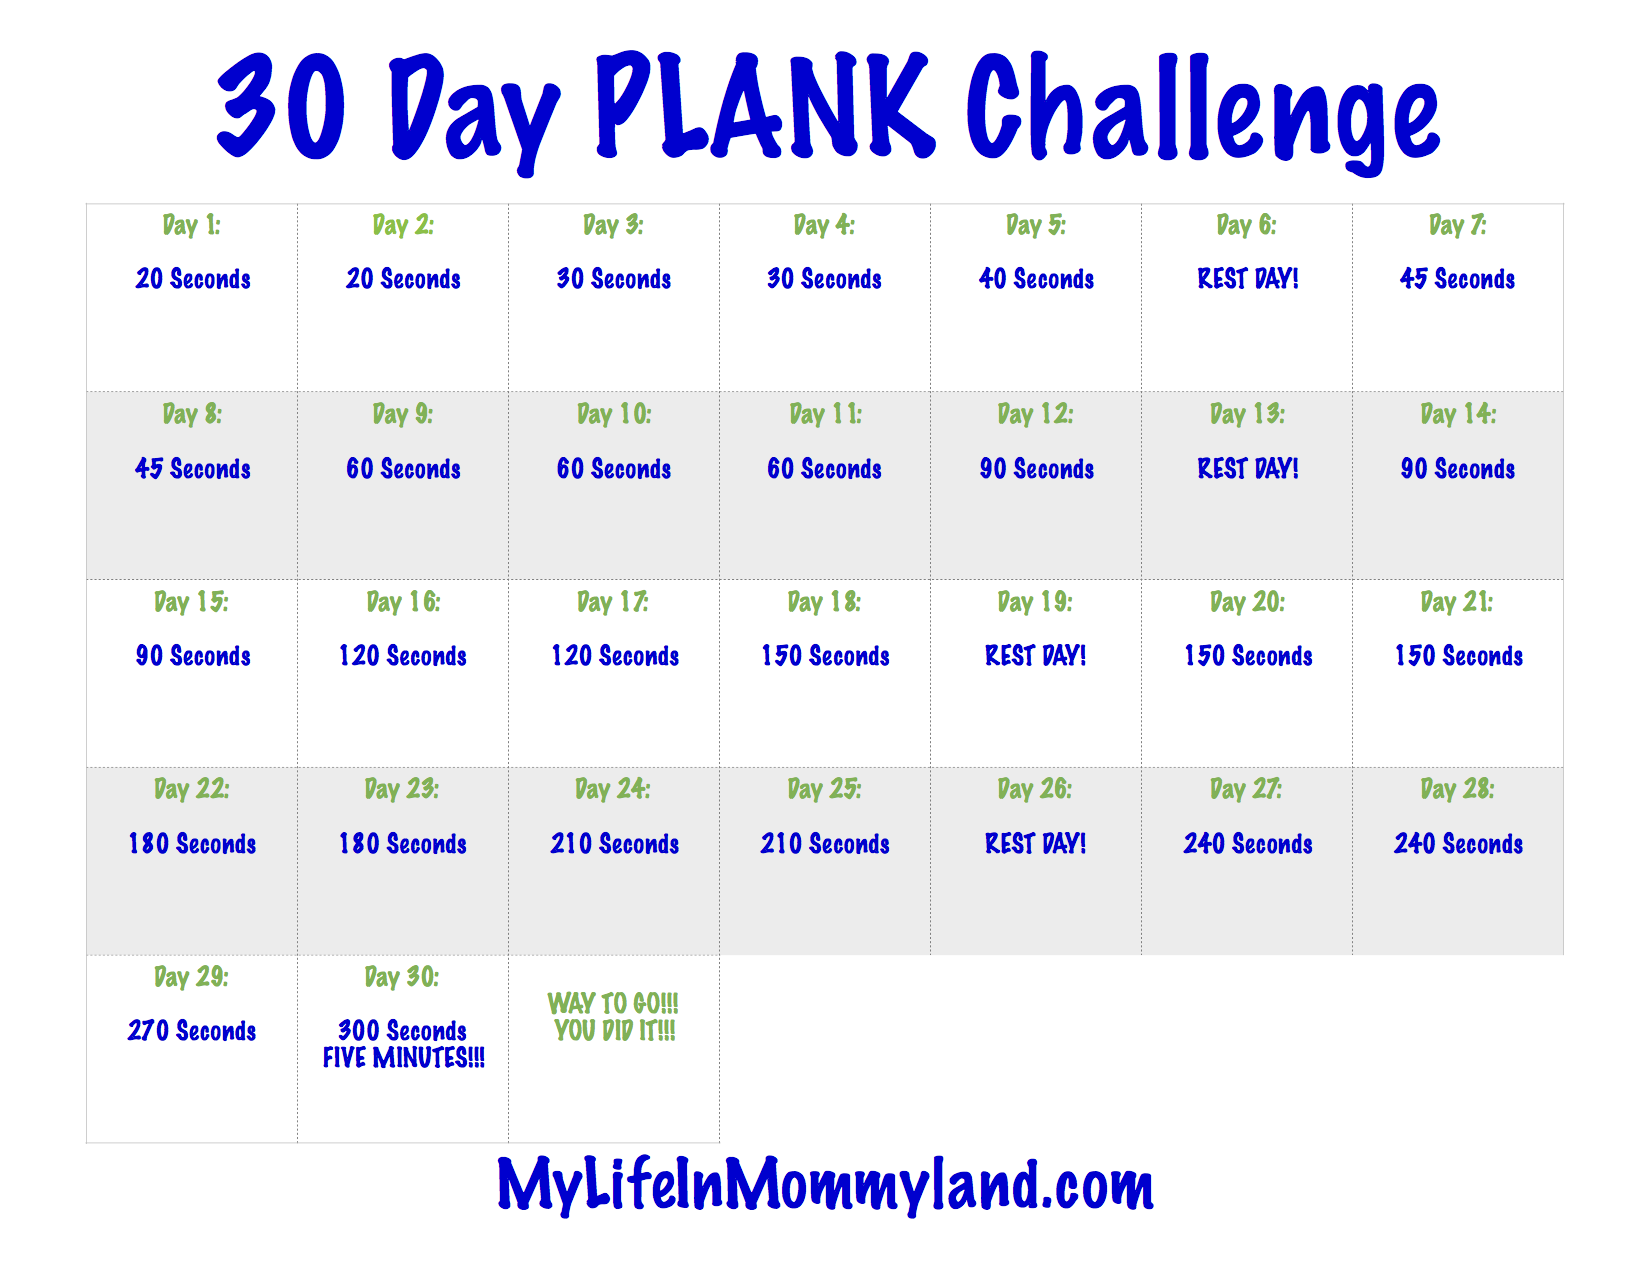 photo about Printable 30 Day Plank Challenge named 30 Working day Mommyland Plank Difficulty My Lifestyle within Mommyland